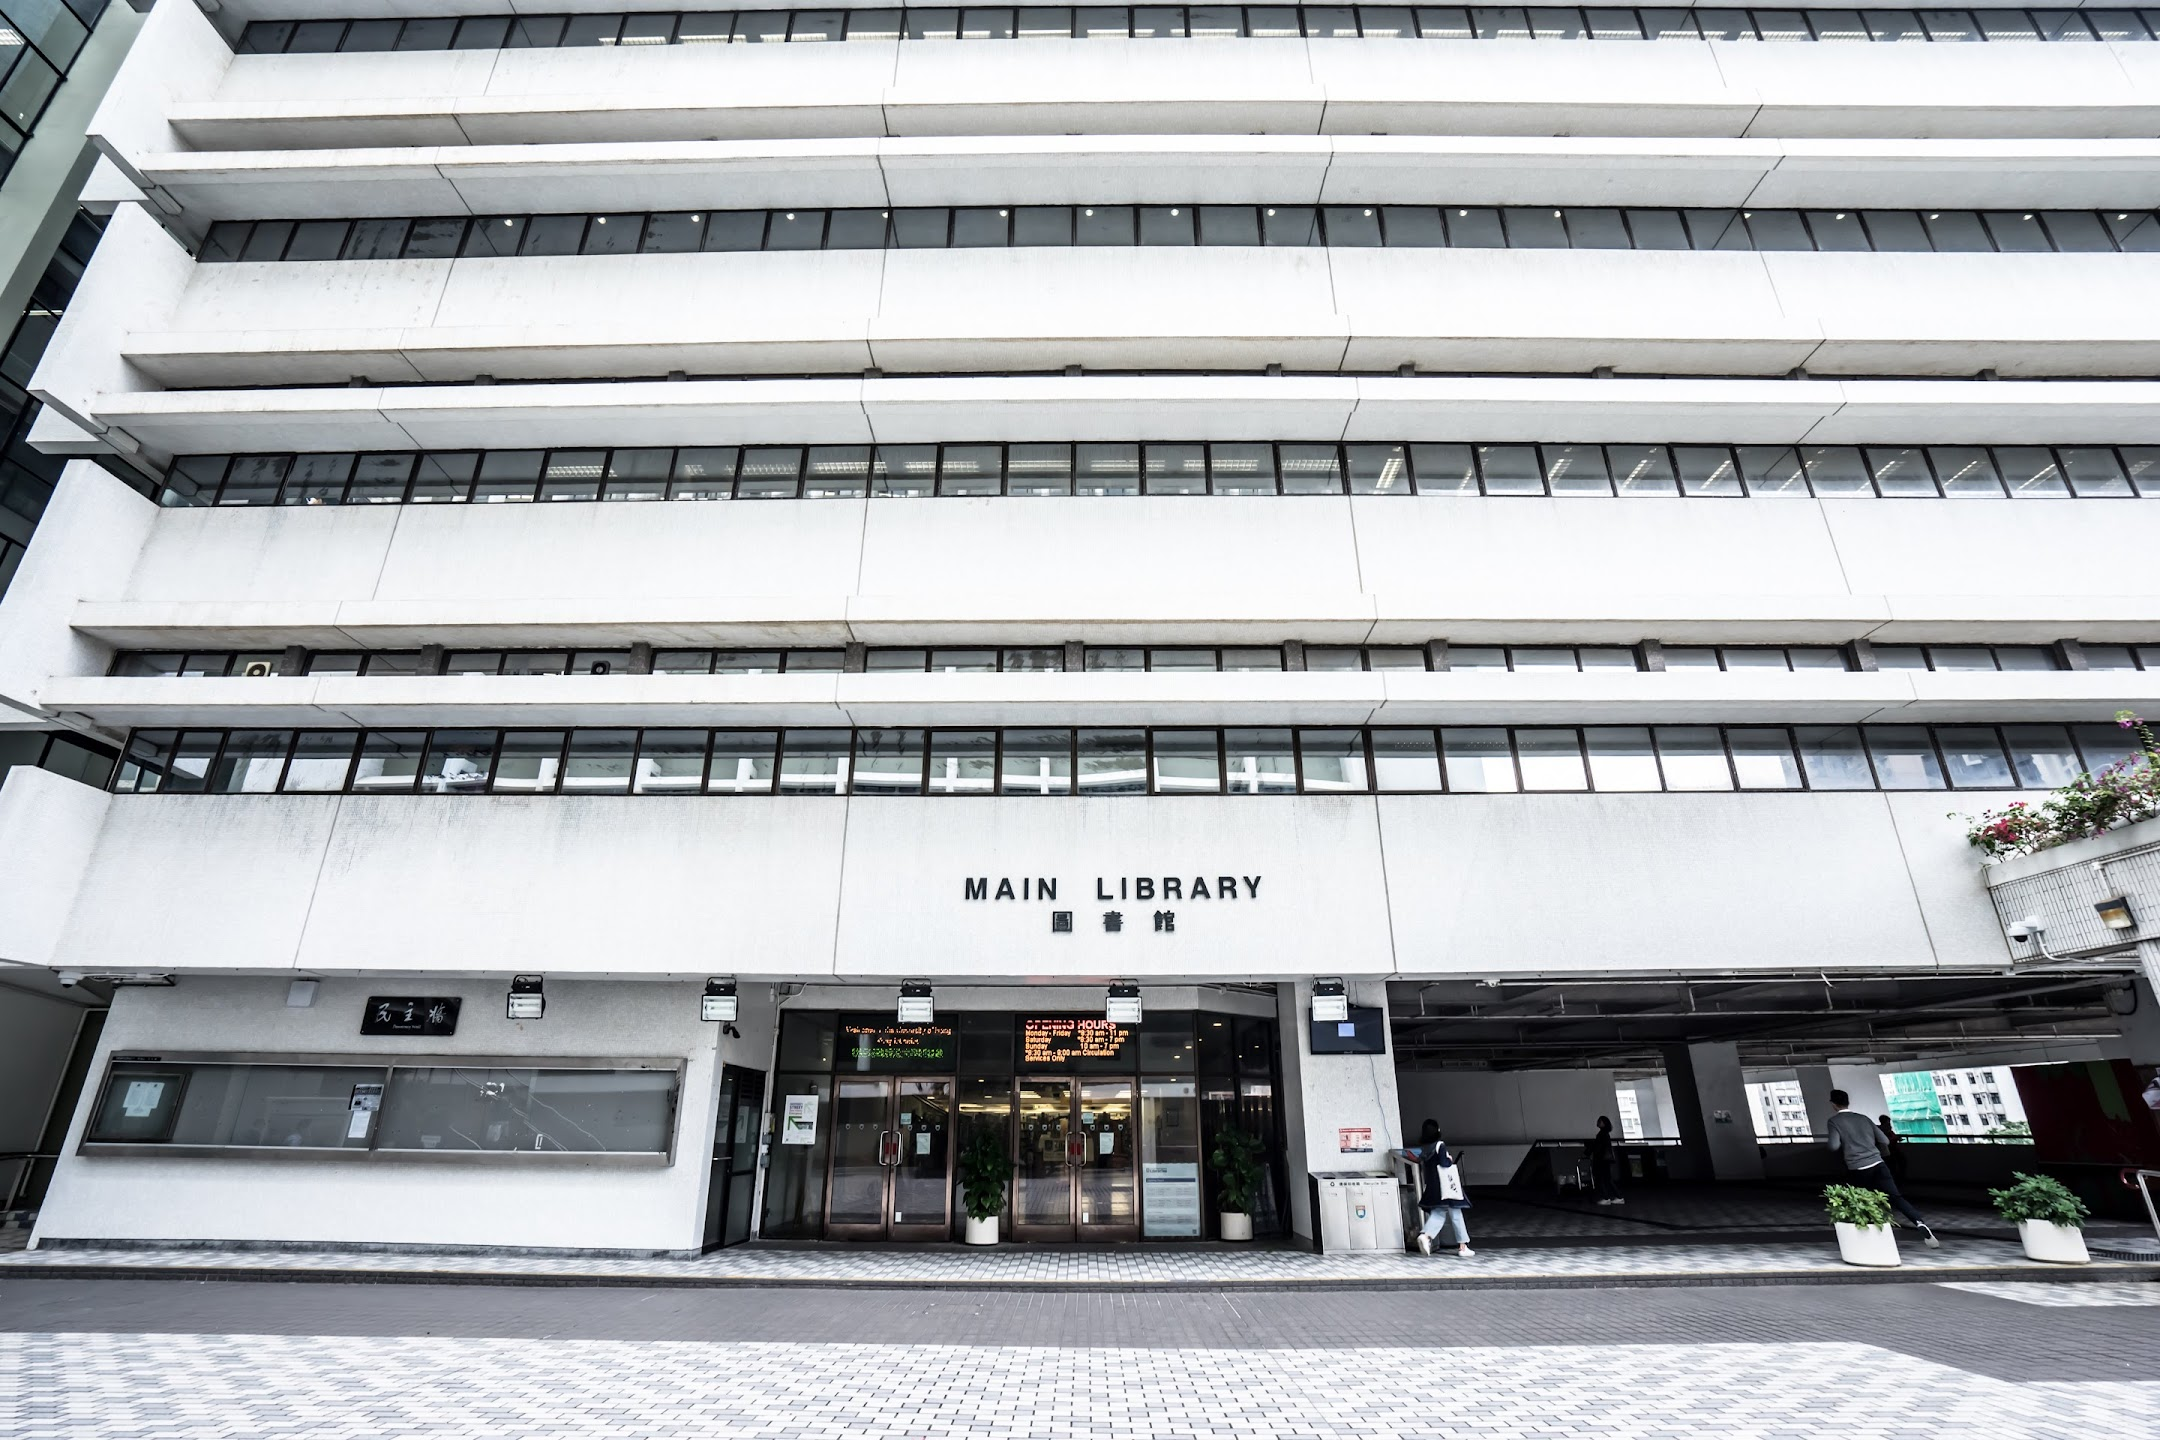 Hong Kong University Library